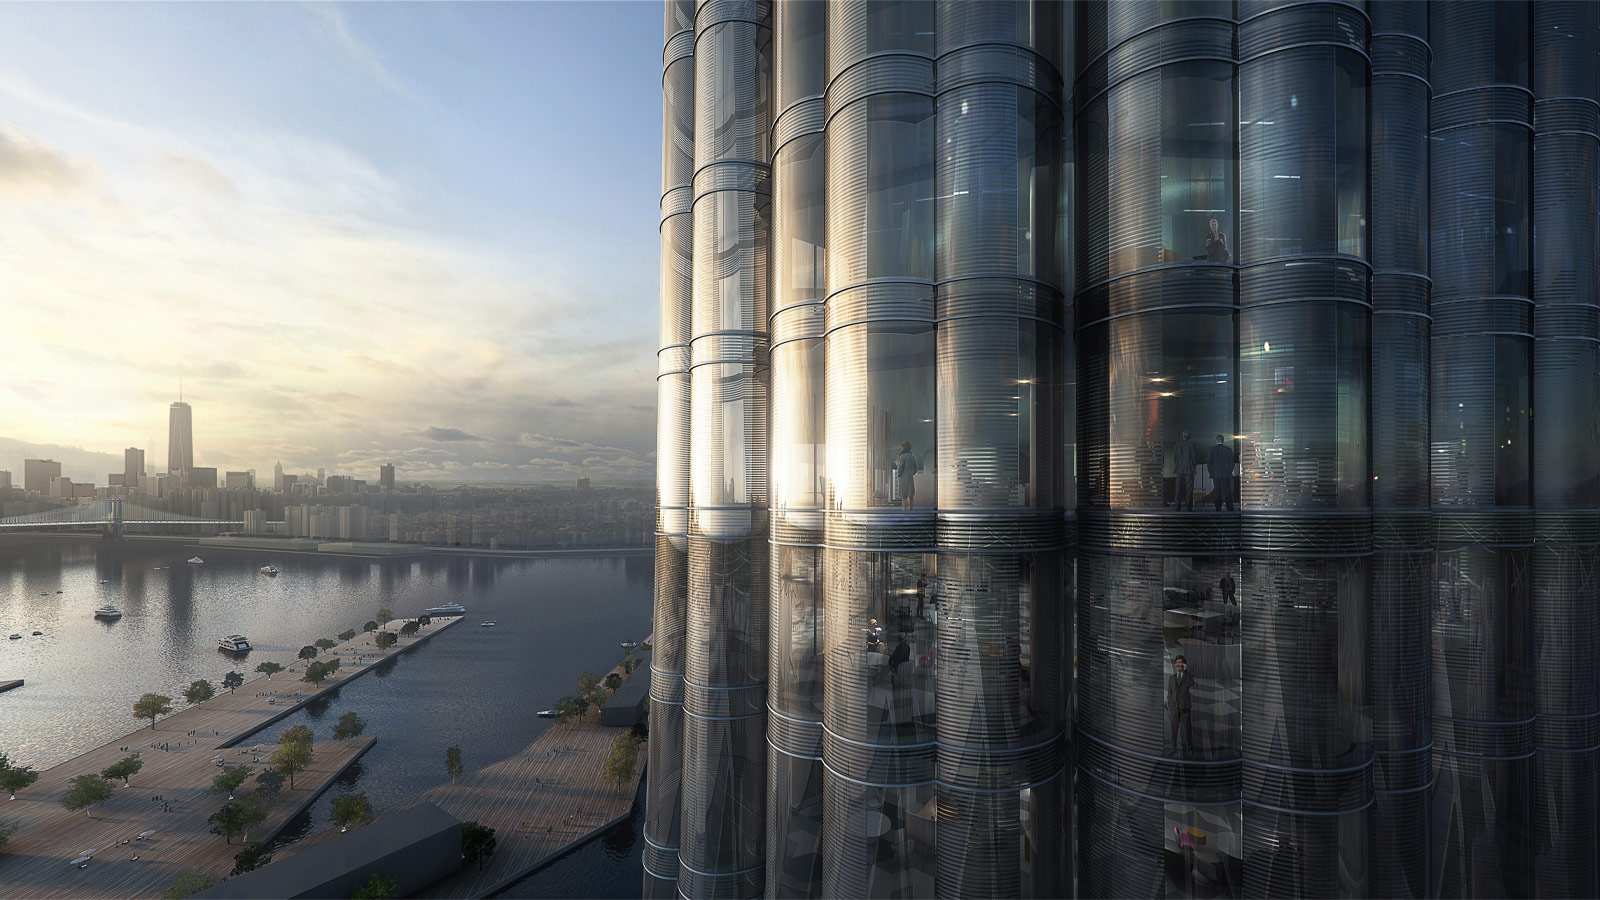 Curved glass building, conceptual image